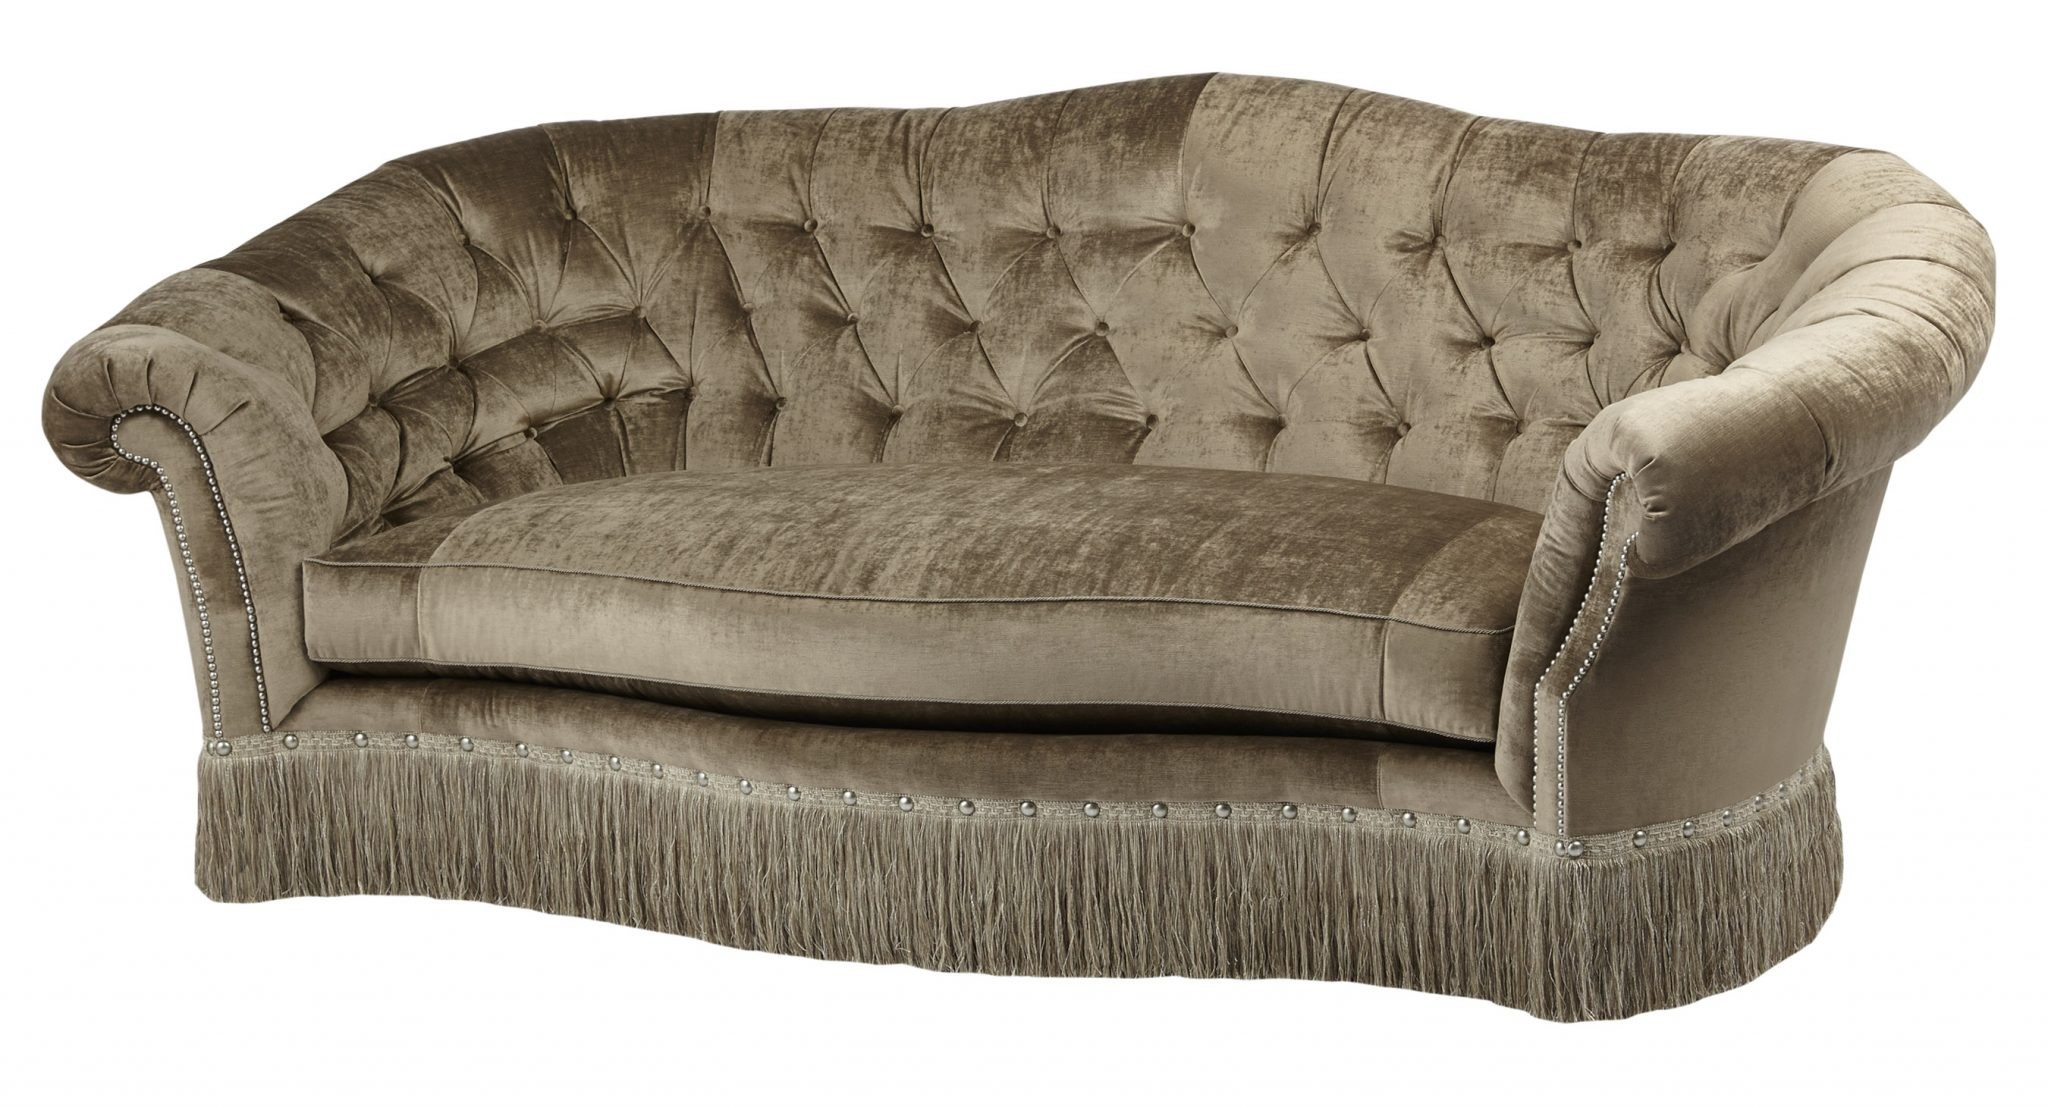 Luxury Leather U0026 Upholstered Furniture 34 Luxury Sofa. High Style  Furniture. The Best Of